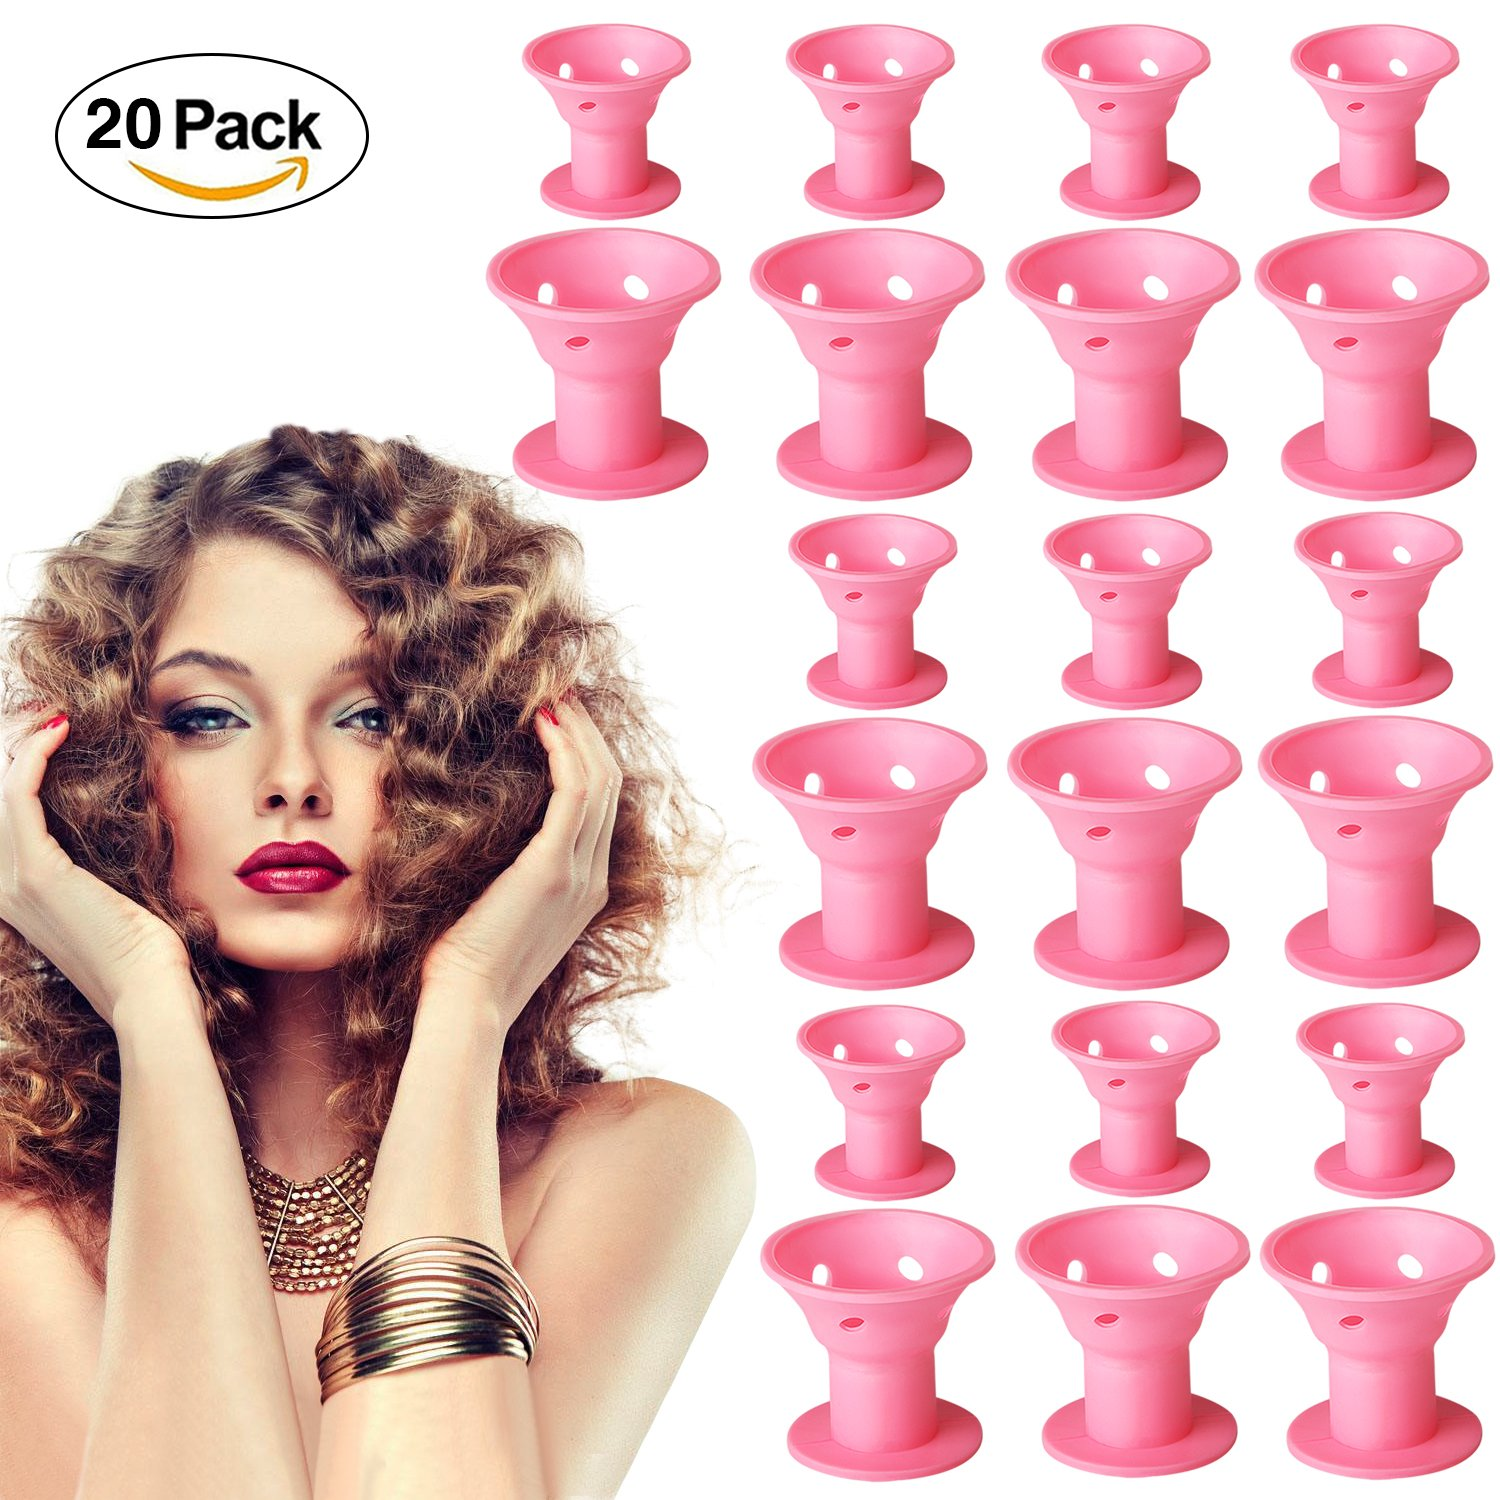 20 Packs DIY Magic Hair Curlers Rollers, Silicone No Clip Hairstyle Curling Modeling Tools - No Heat No Damage Hair- for Beauty women girl (pink)